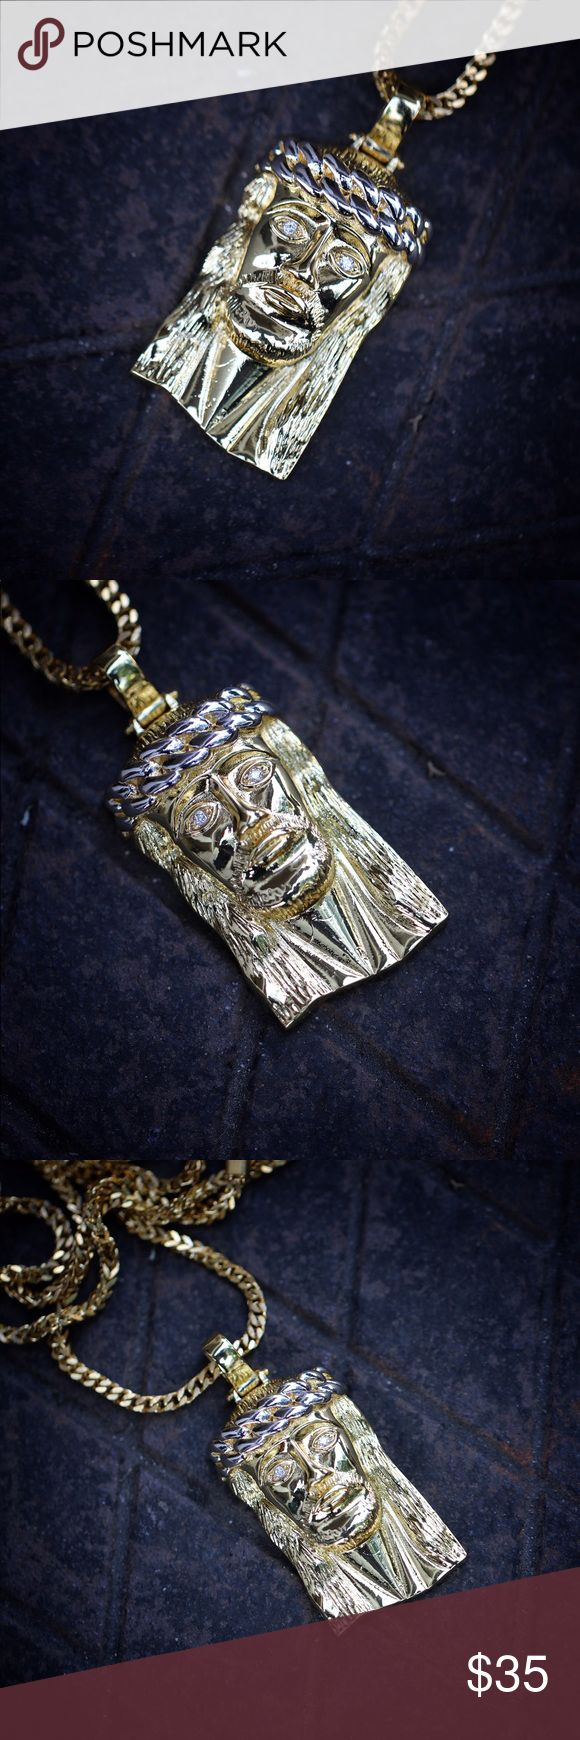 Hip Hop 18k Gold Jesus Piece Pendant And Chain Hip Hop 18k Gold Jesus Piece Pendant And Franco Chain  Jesus Piece is about 2 inches in length. Chain is made of 316 stainless steel with a 18k gold plating. 2.5mm width 22,24 or 26 inch franco chain or 3mm width 30 inch franco chain Included. The Jesus piece has a silver crown in a cuban link style TSV Jewelers Accessories Jewelry